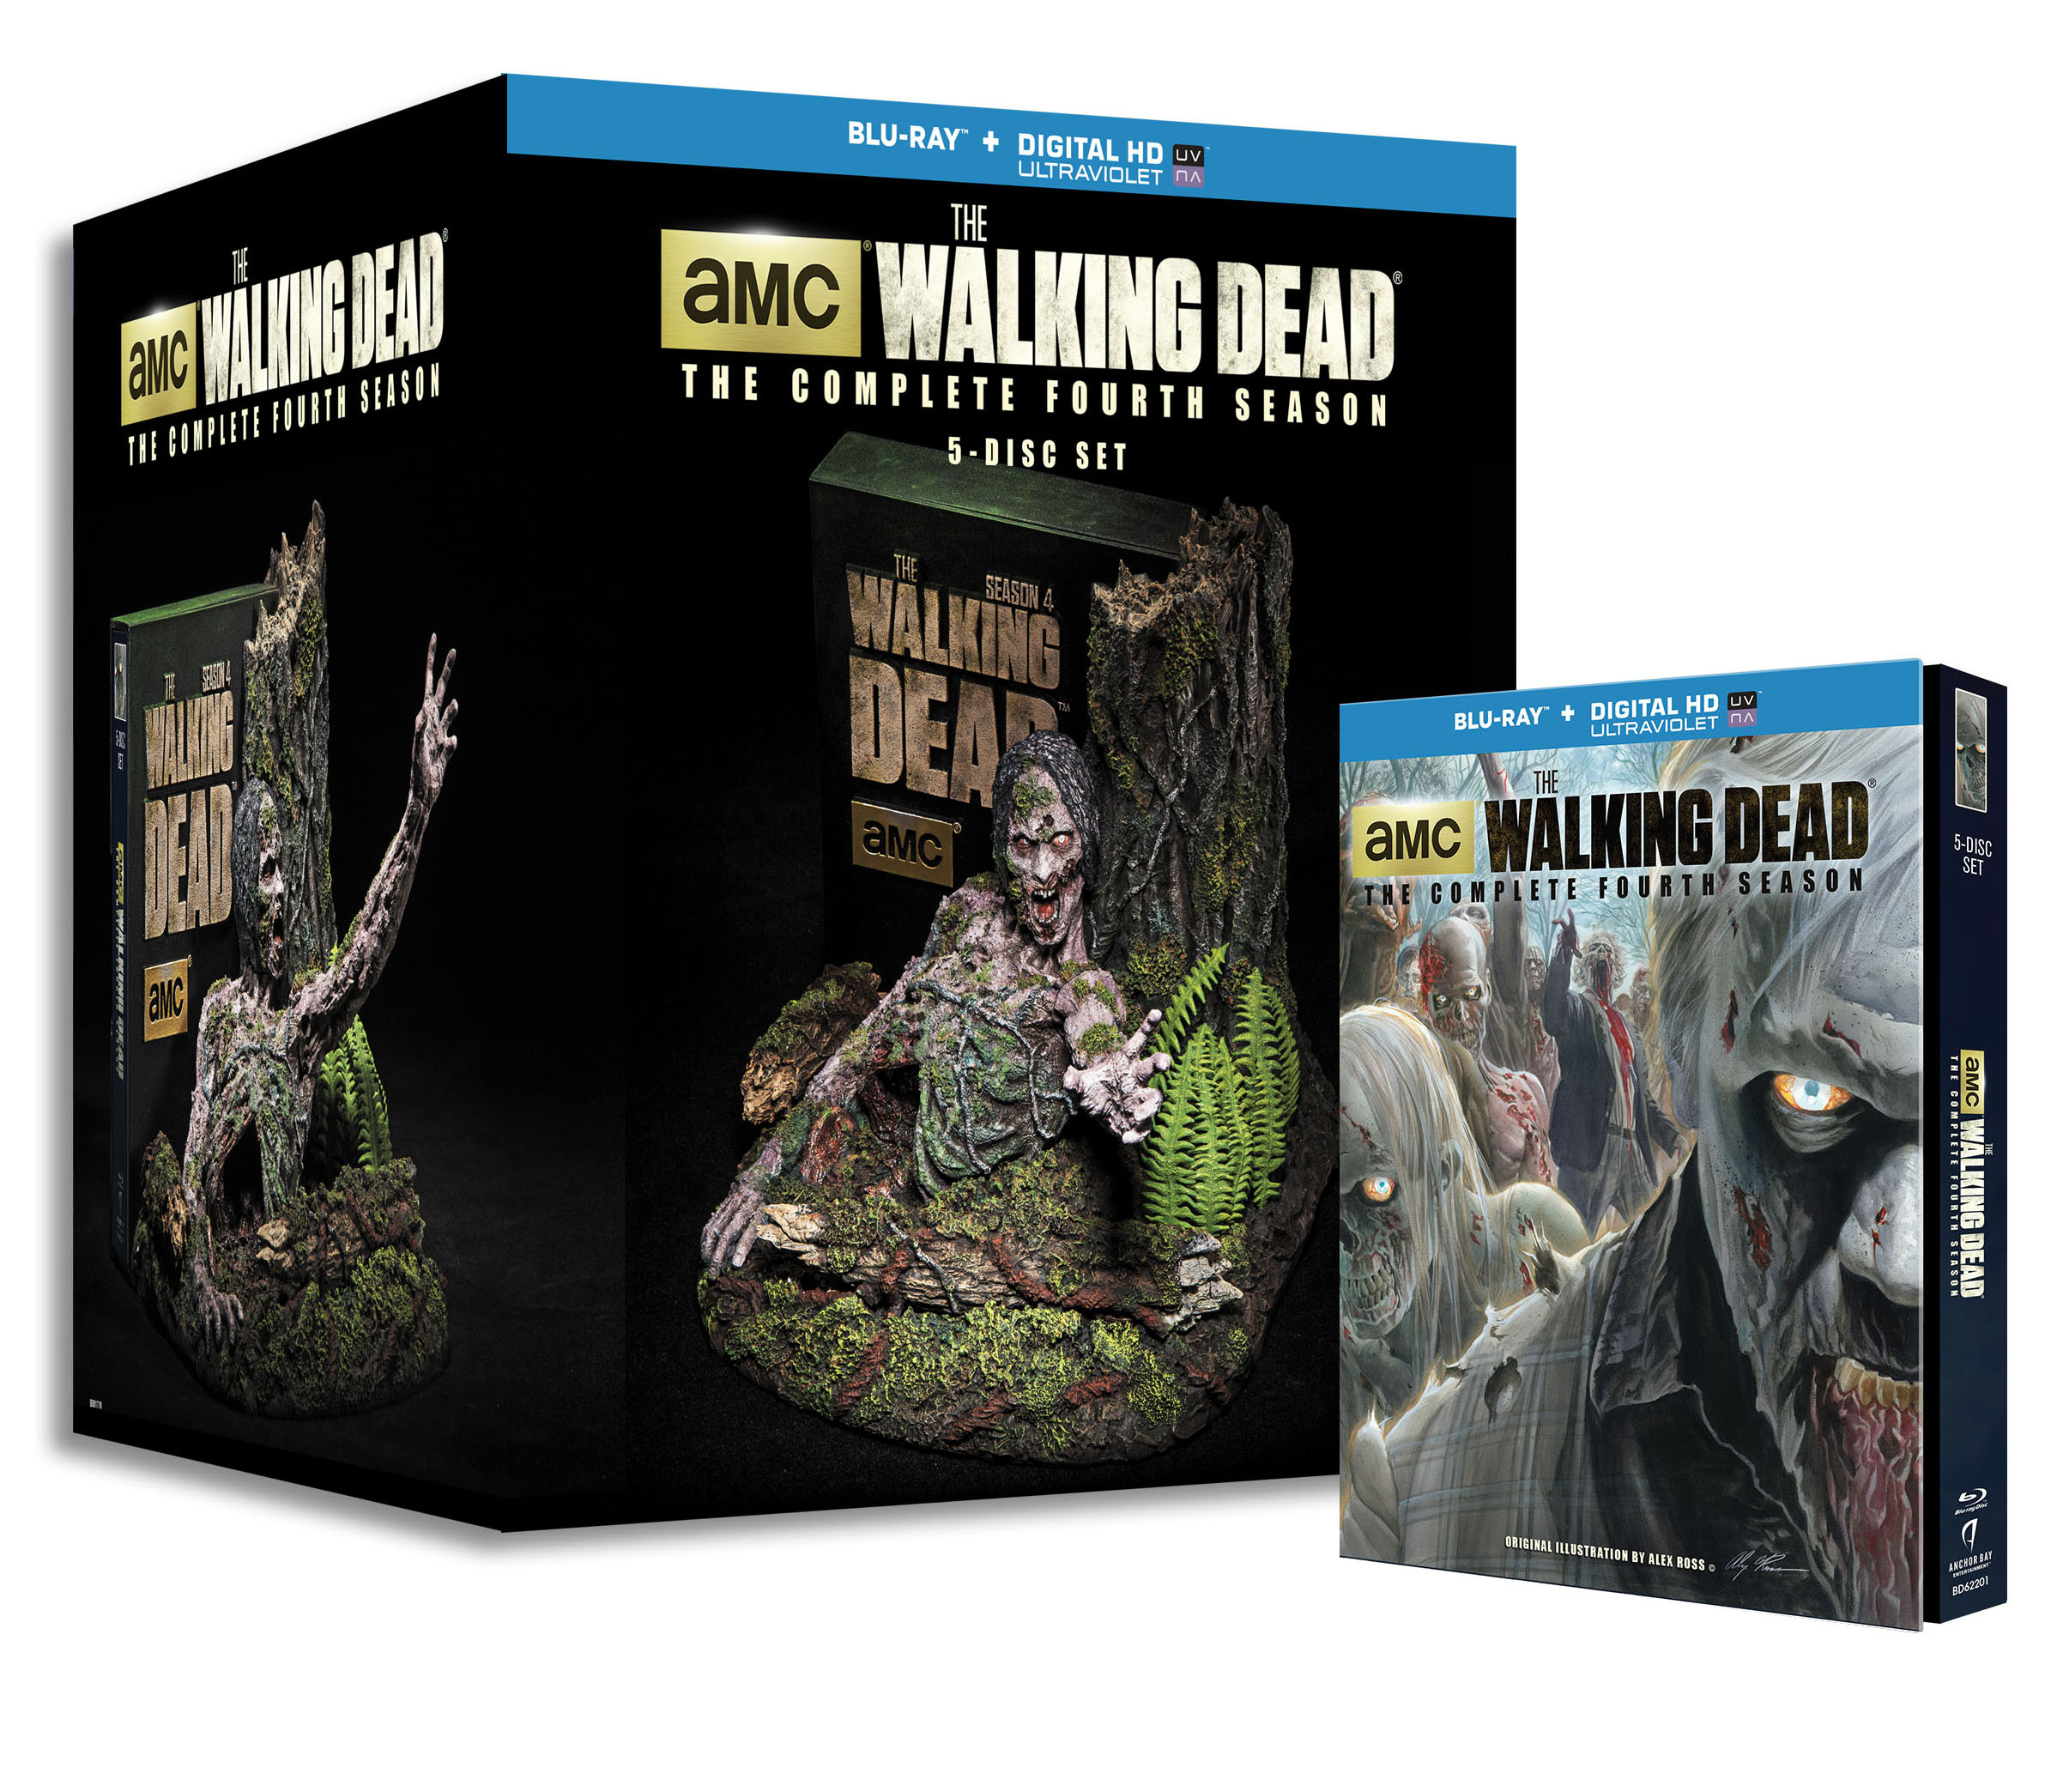 wds4 Limited Edition beauty shot7 The Walking Dead: The Complete Fourth Season Coming to DVD and Blu ray August 26